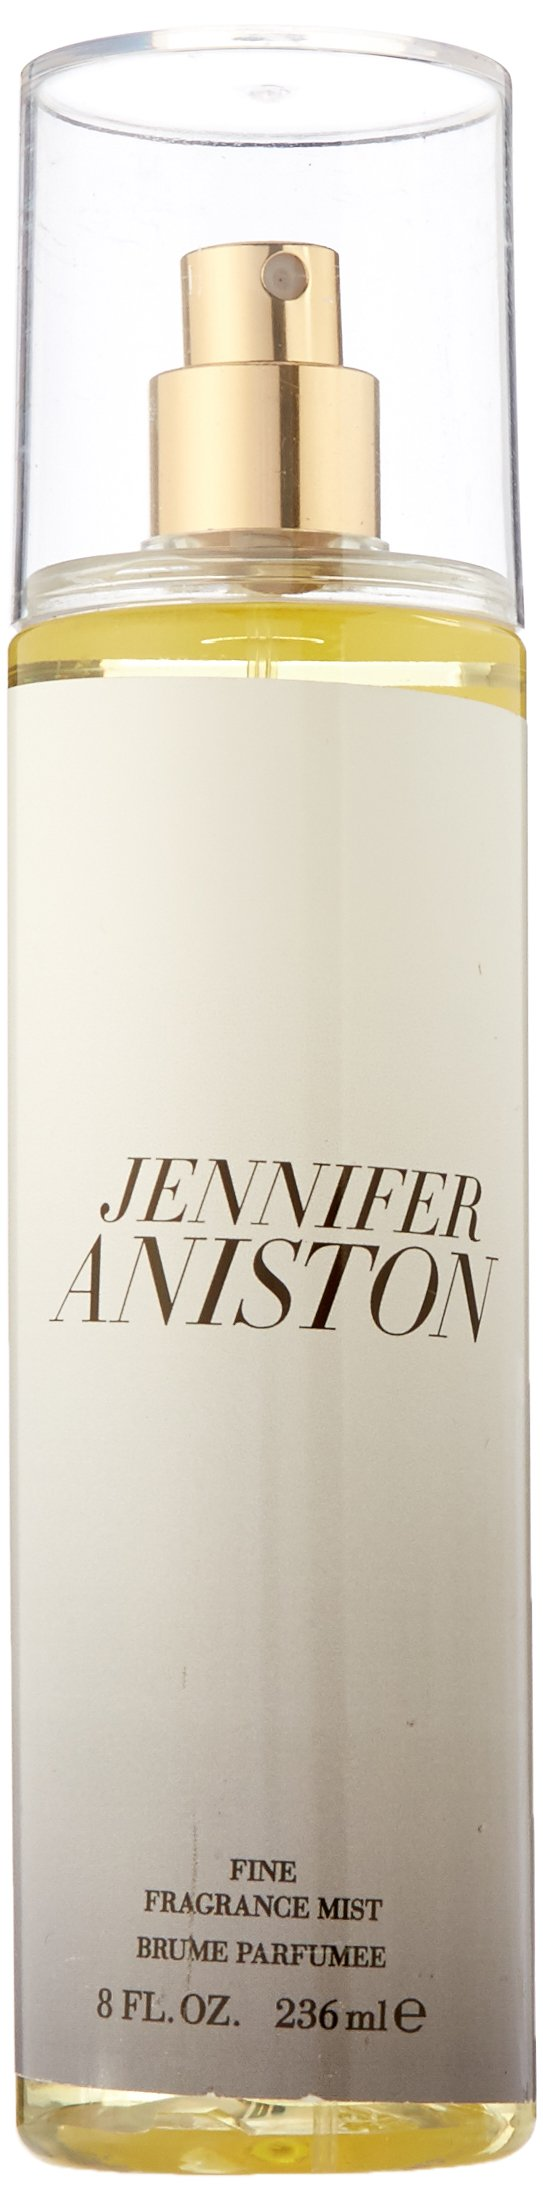 Jennifer Aniston Fine Fragrance Mist for Women, 8 Ounce